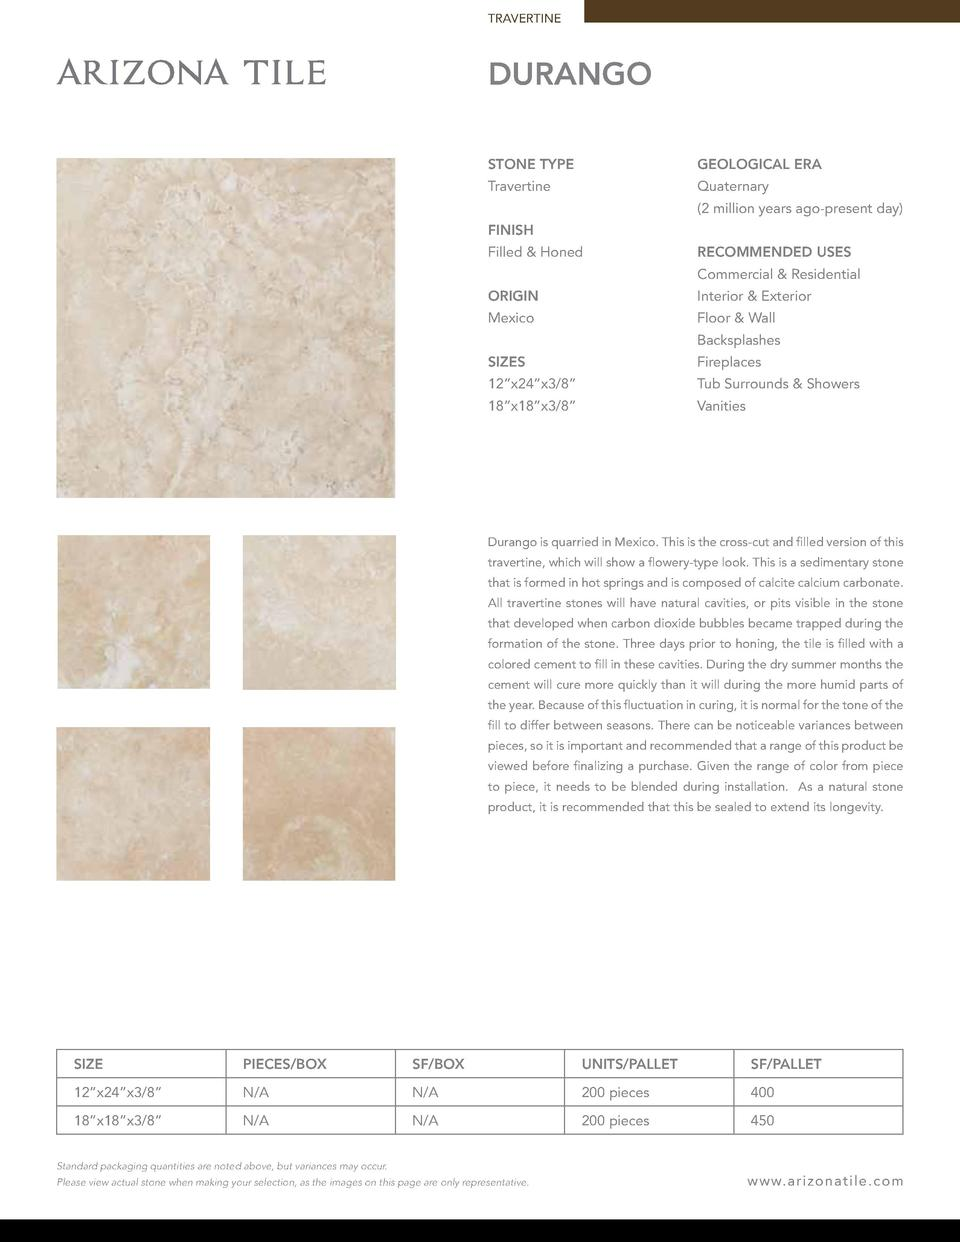 TRAVERTINE  Durango STONE TYPE  GEOLOGICAL ERA  Travertine  Quaternary  2 million years ago-present day   FINISH Filled   ...